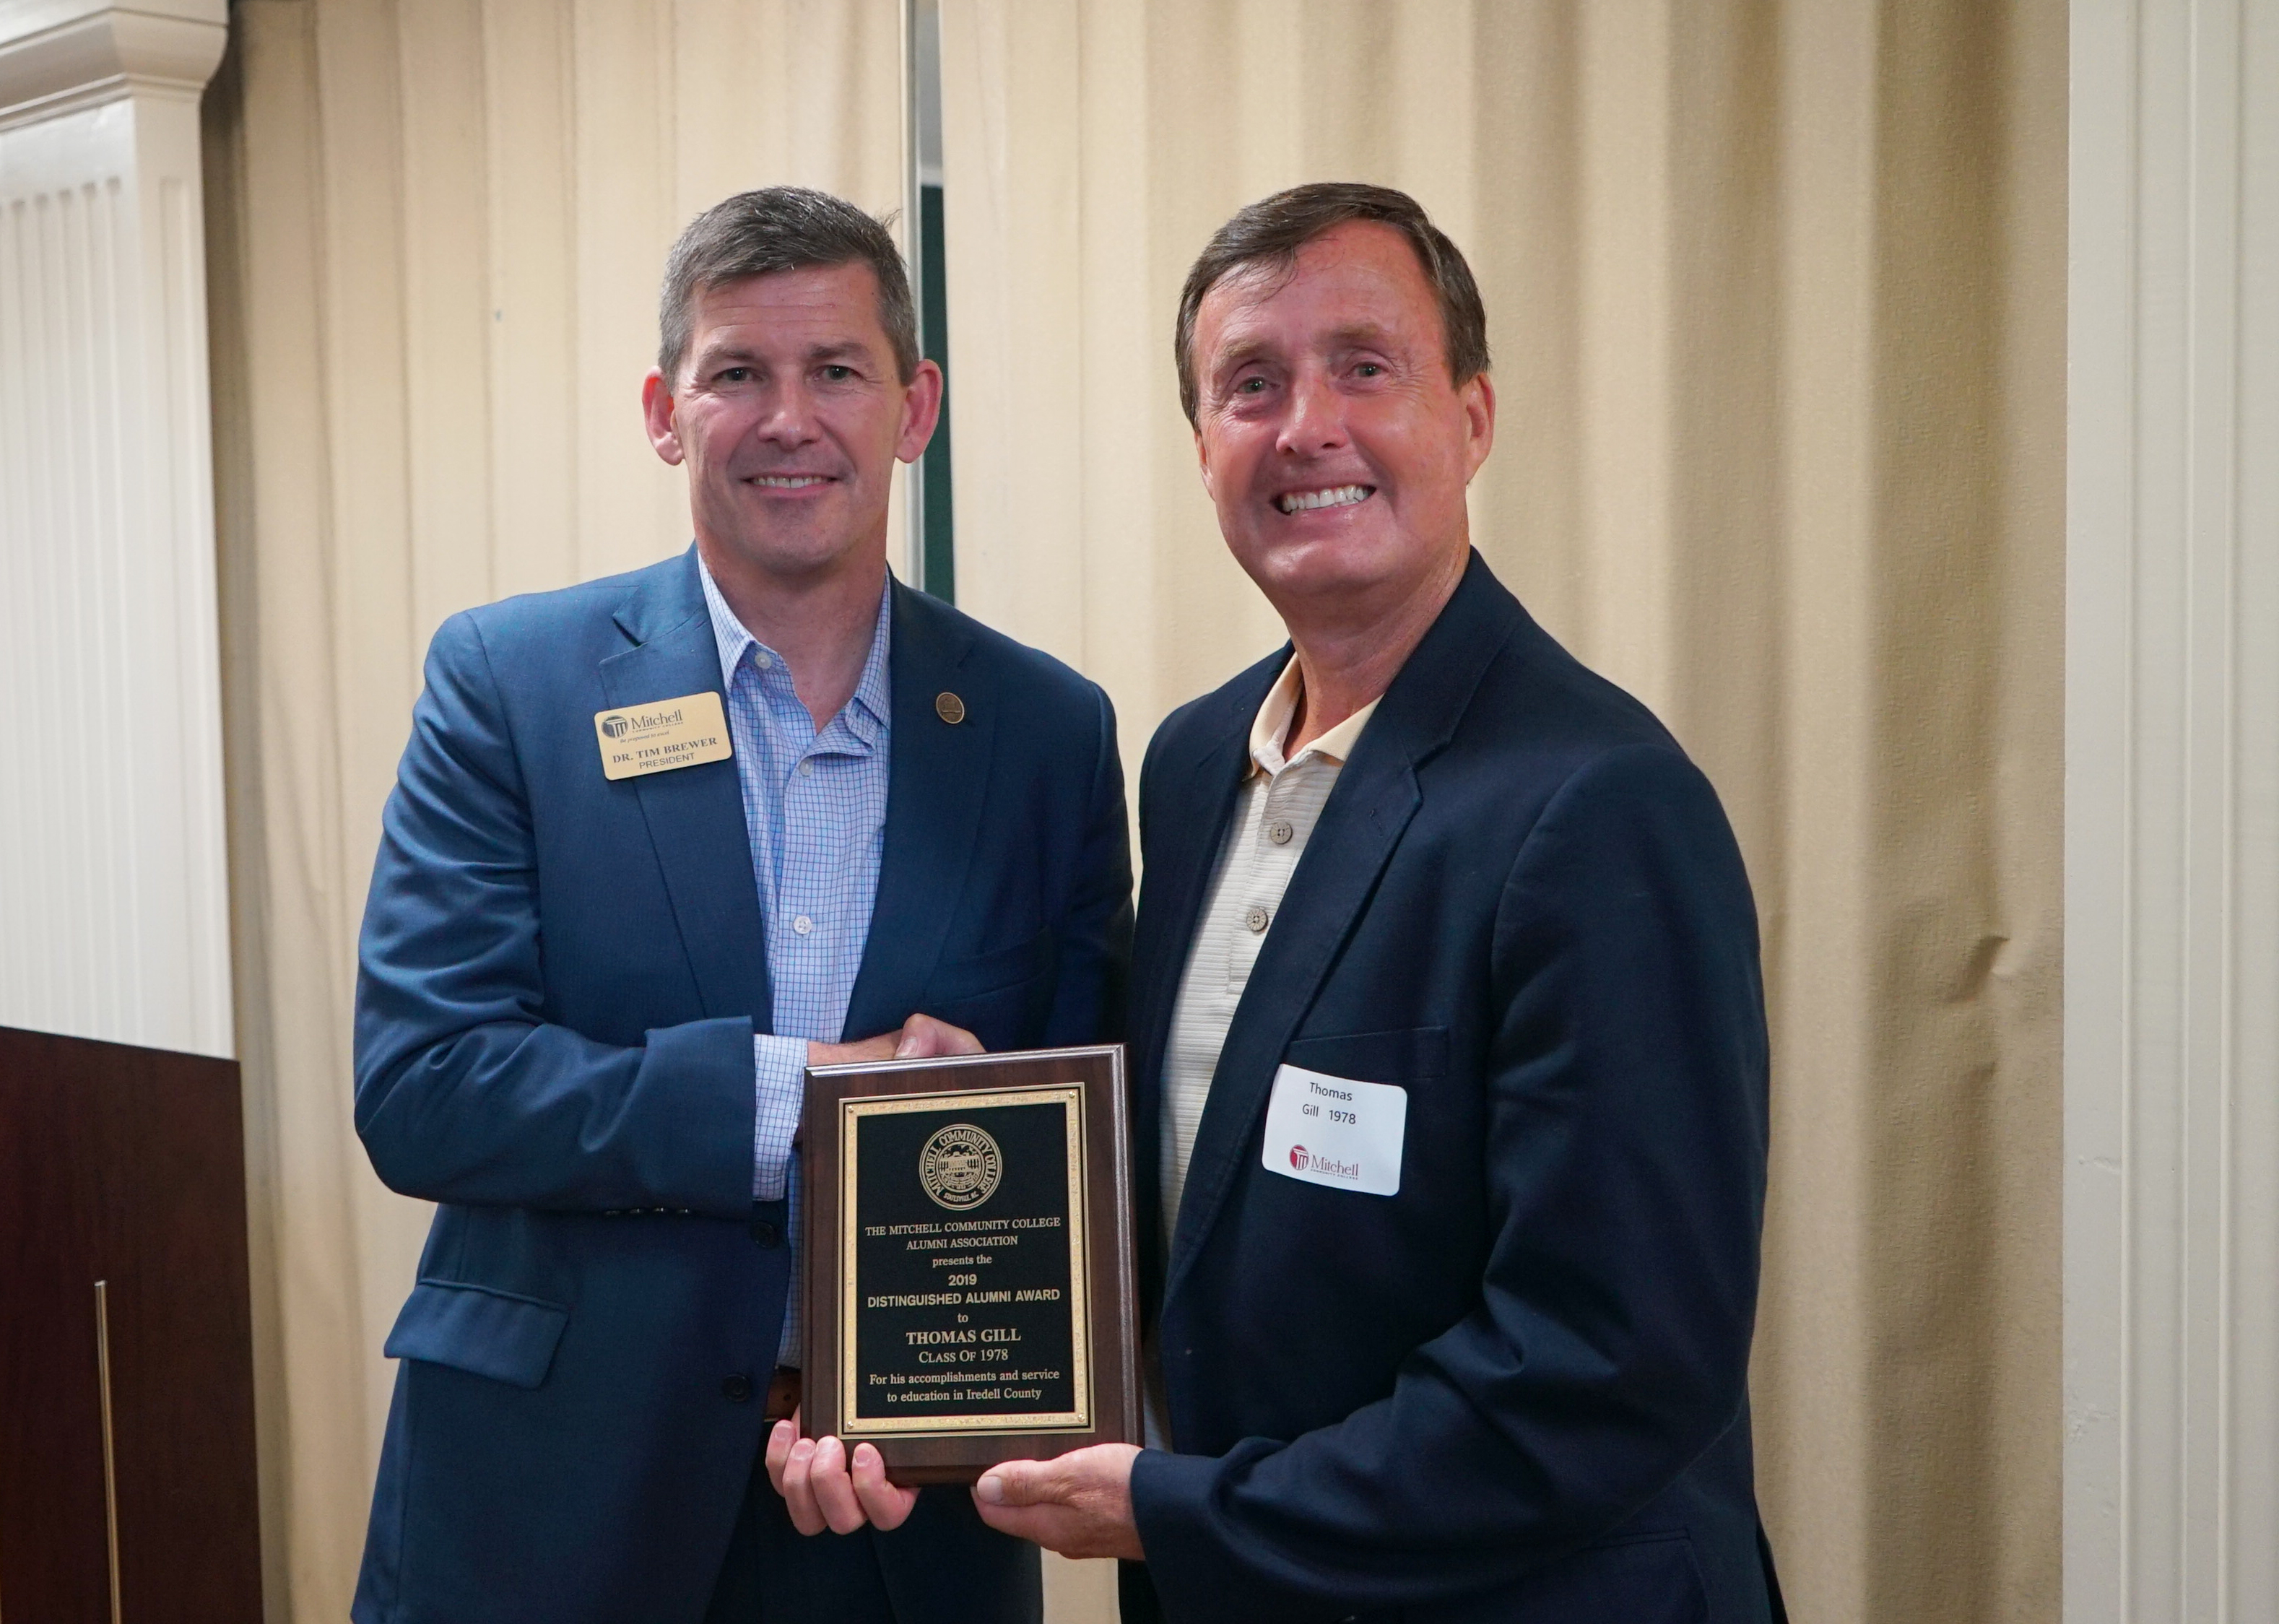 Tom Gill accepting plaque from Dr. Brewer